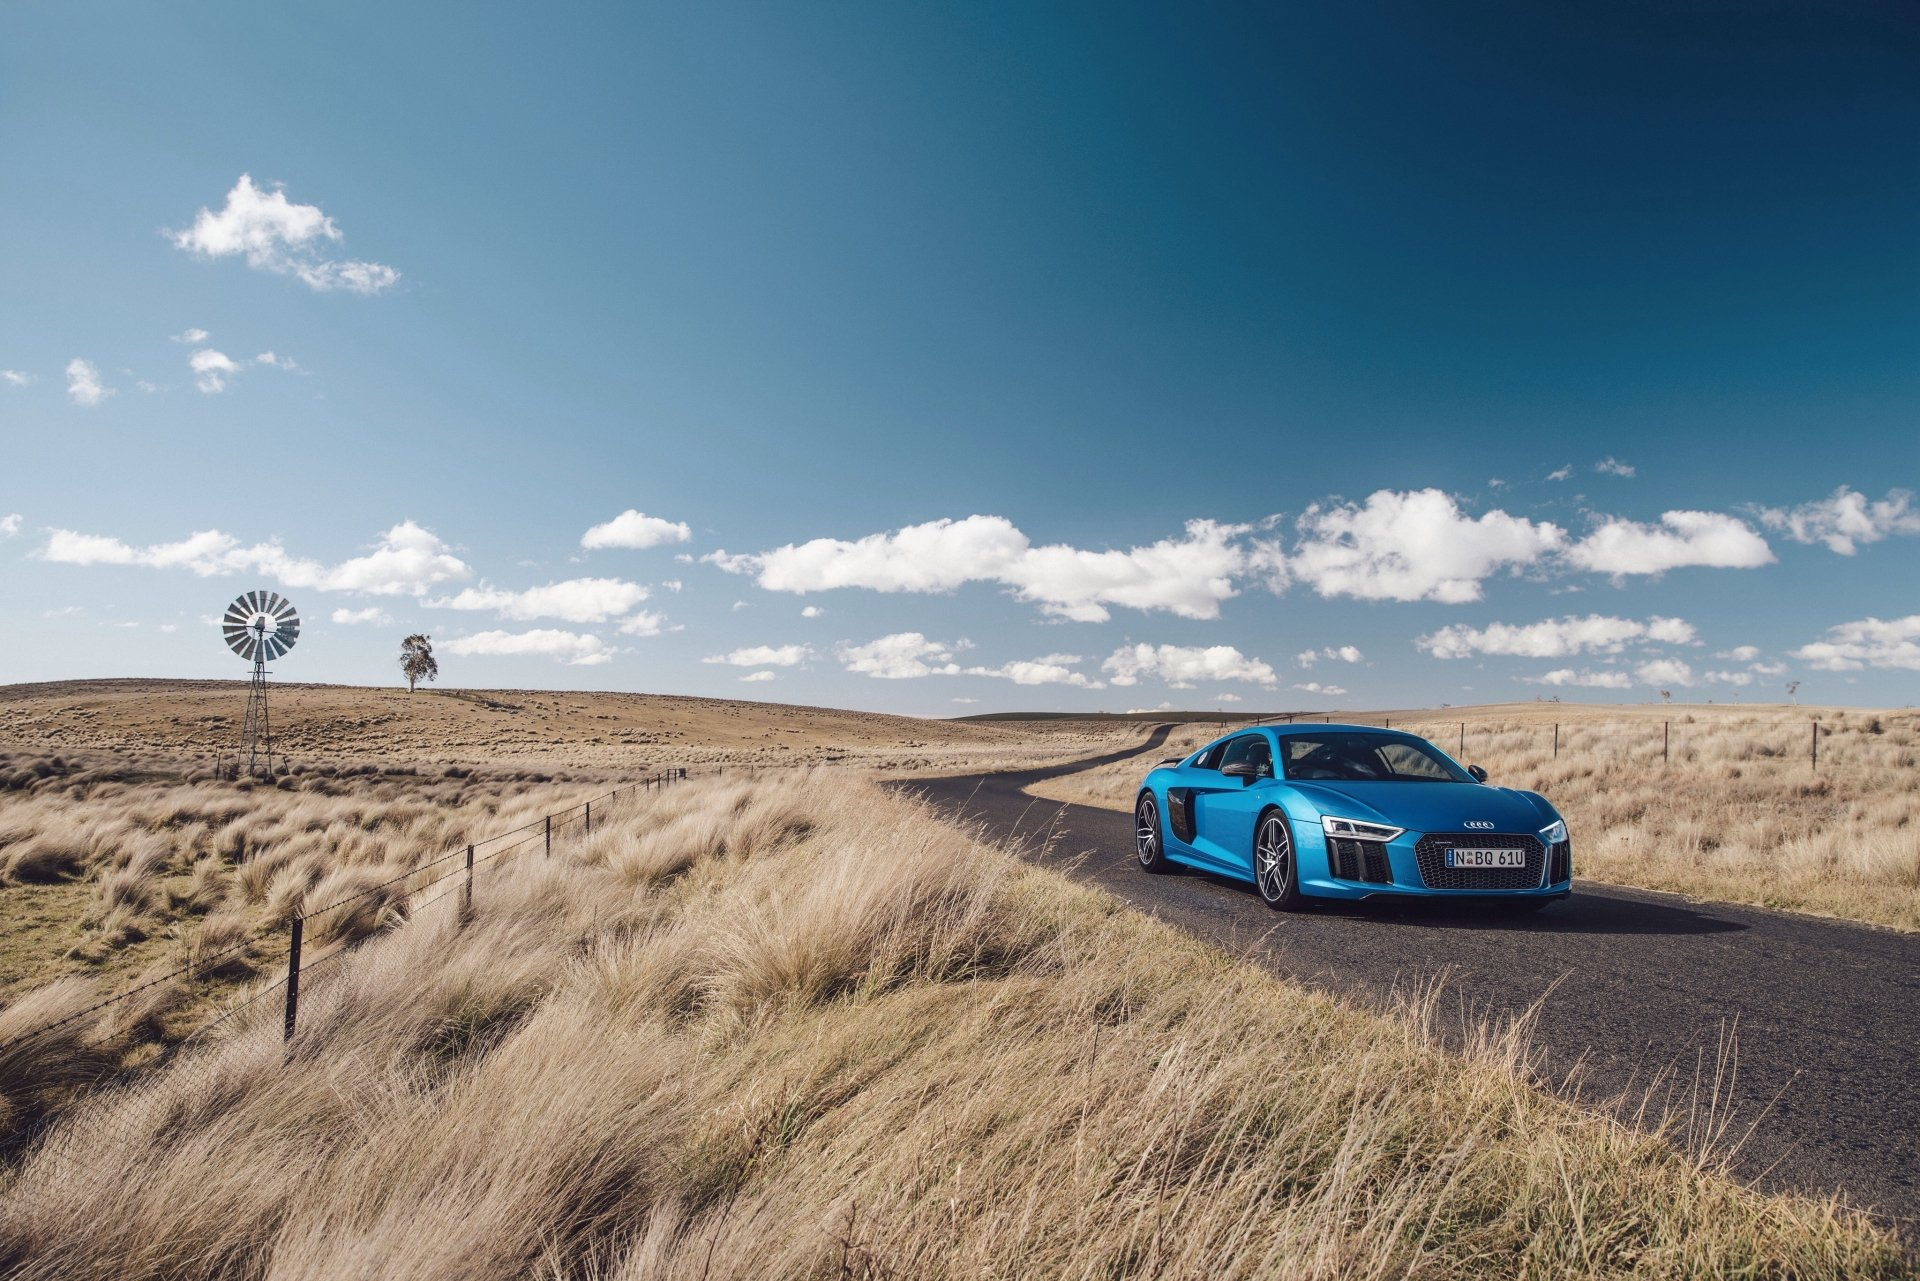 Vehicles - Audi R8  Audi Supercar Blue Car Audi R8 V10 Sport Car Car Vehicle Wallpaper